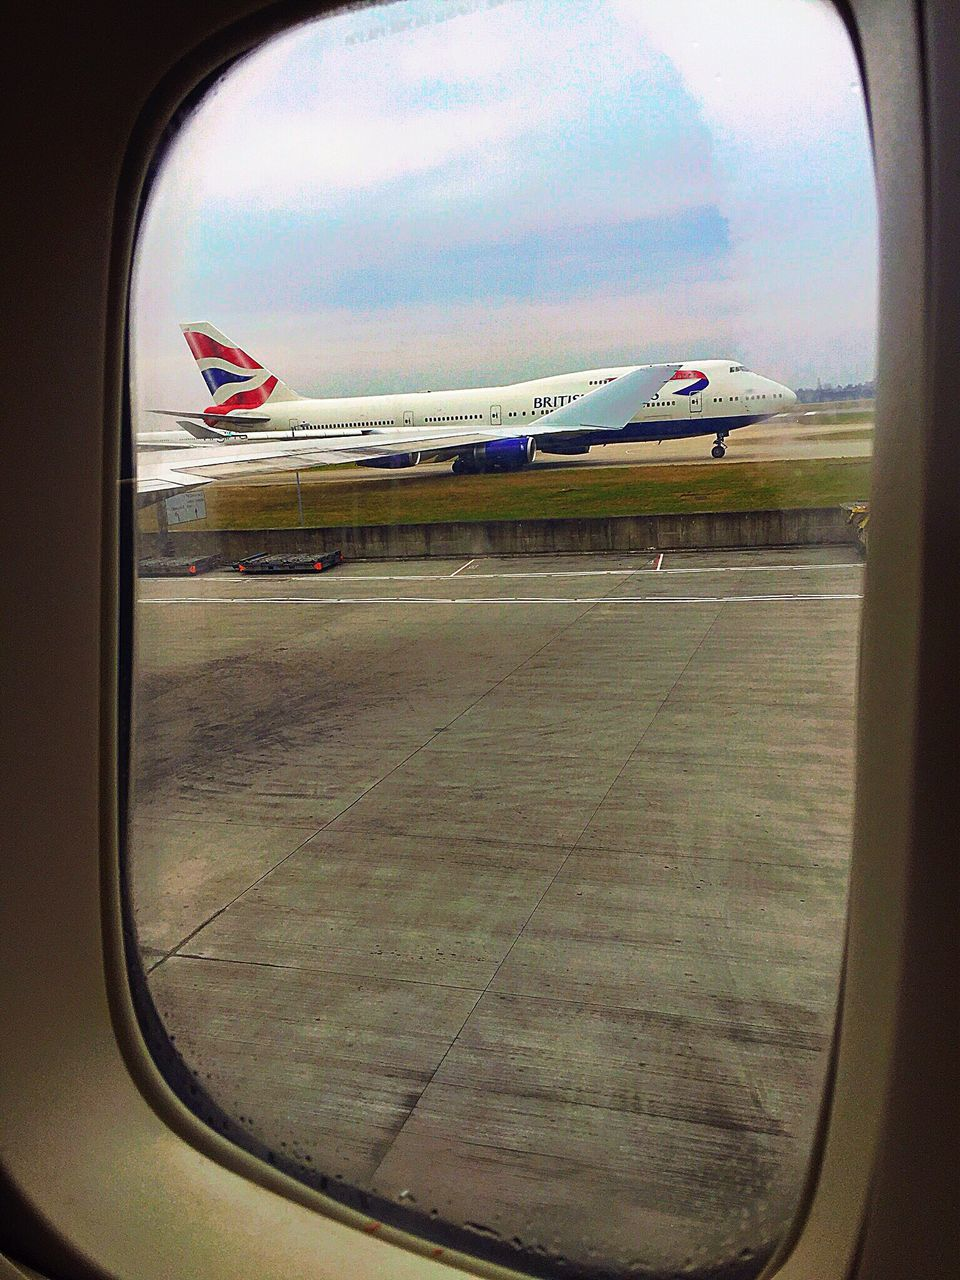 airplane, transportation, window, runway, mode of transport, journey, air vehicle, travel, airport, sky, no people, day, flying, airport runway, airplane wing, commercial airplane, indoors